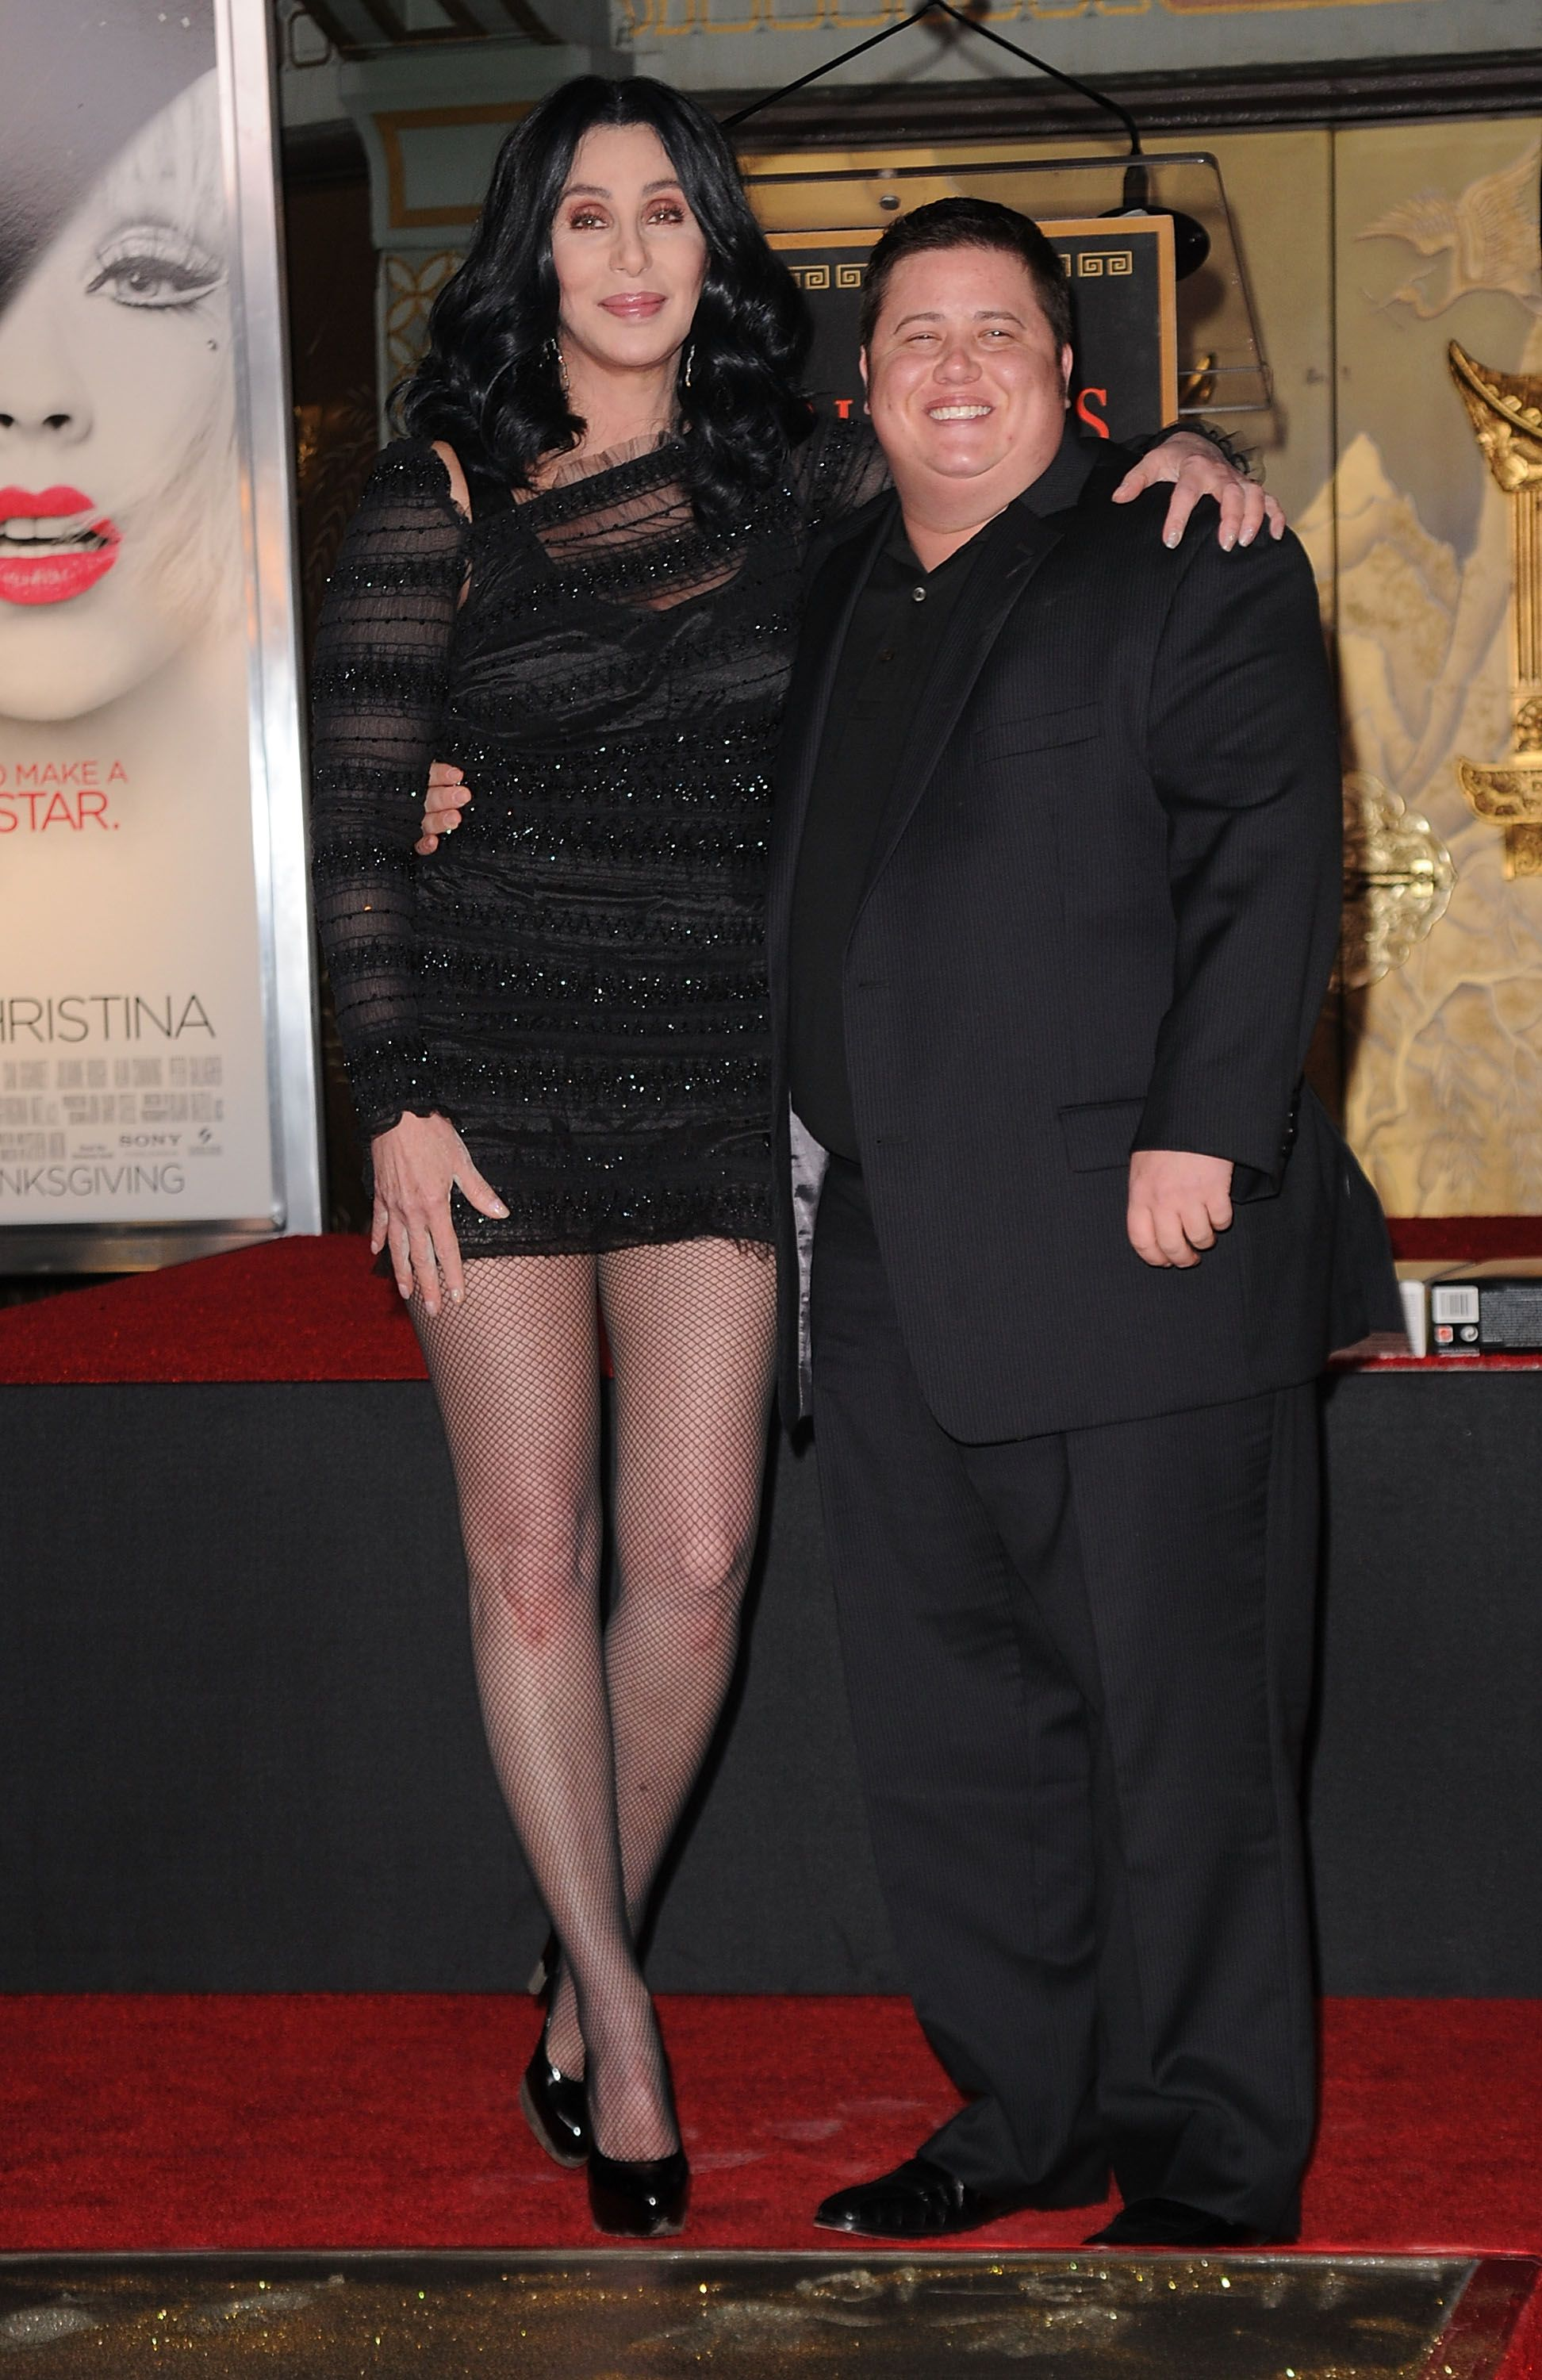 Cher and Chaz Bono at Grauman's Chinese Theatre in 2010 in Hollywood, California | Source: Getty Images